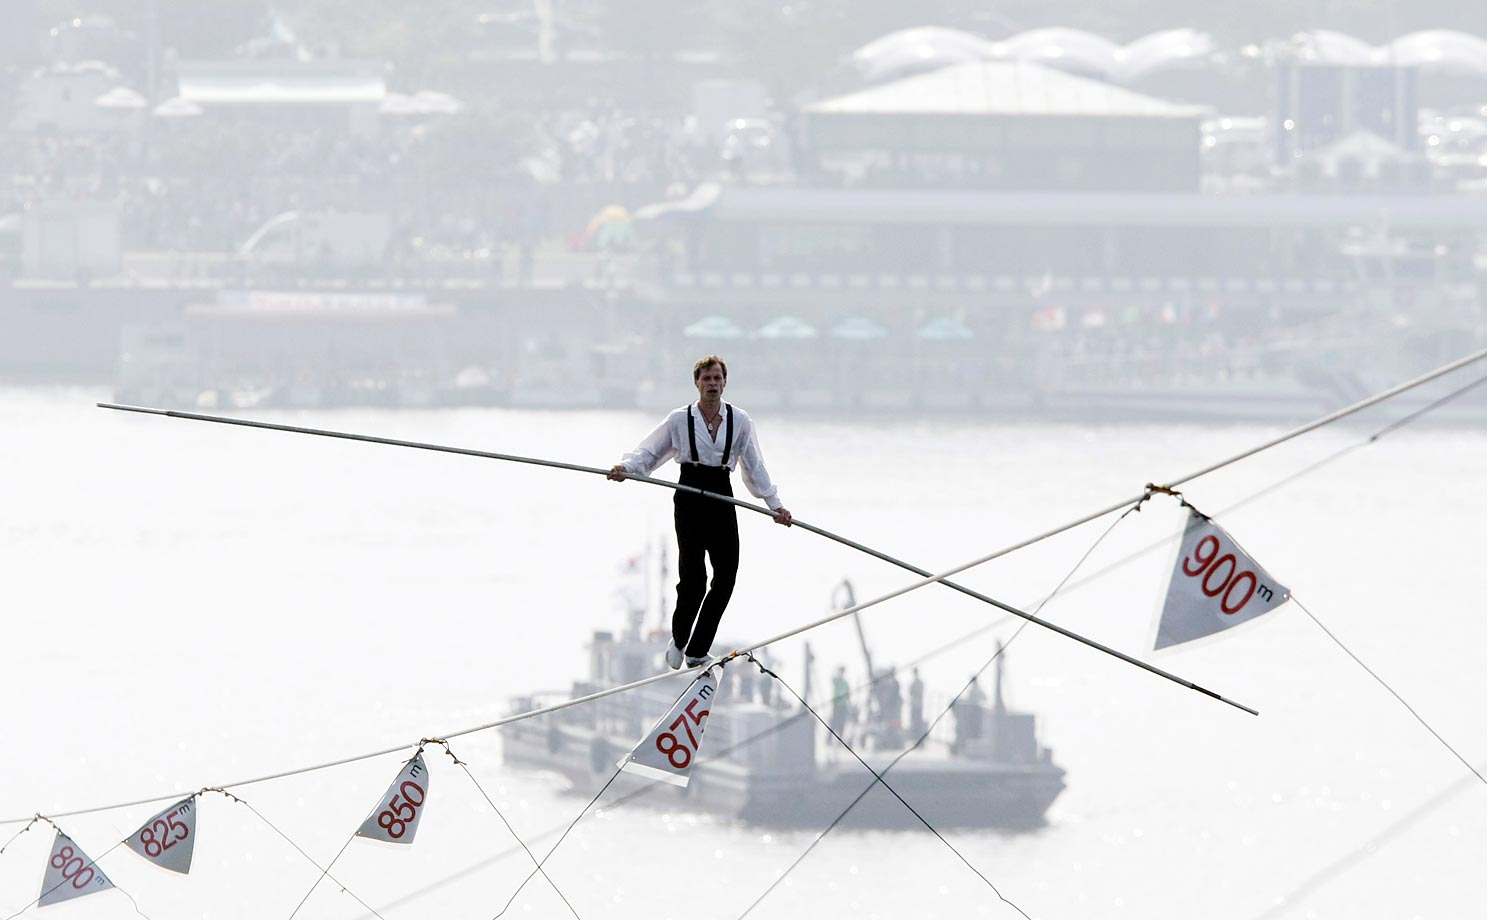 Jade Kindar-Martin of the United States walks the high wire during the World High Wire Championships.